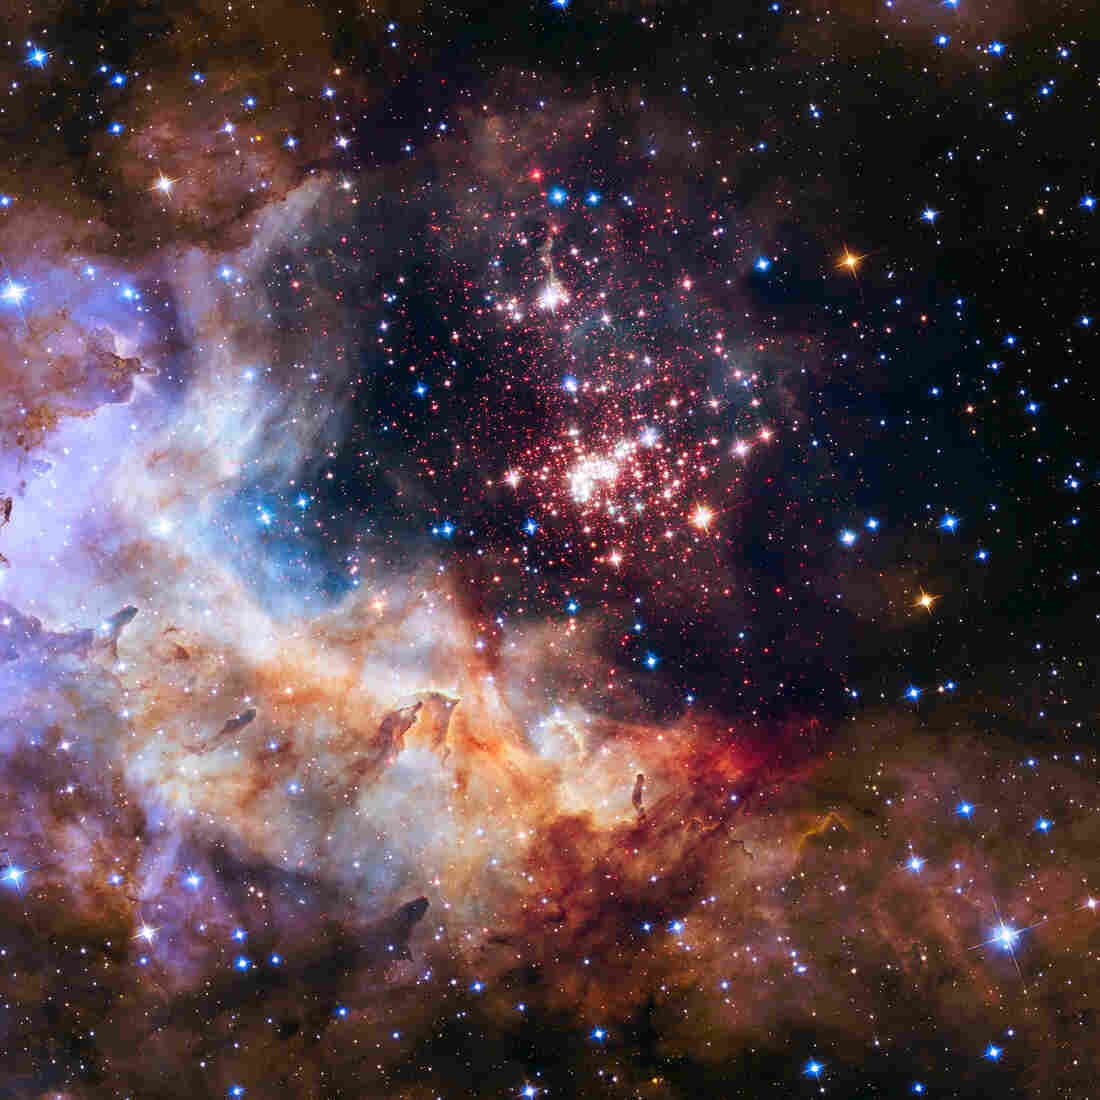 A giant cluster of about 3,000 stars called Westerlund 2. The cluster resides in a raucous stellar breeding ground known as Gum 29, located 20,000 light-years away in the constellation Carina.